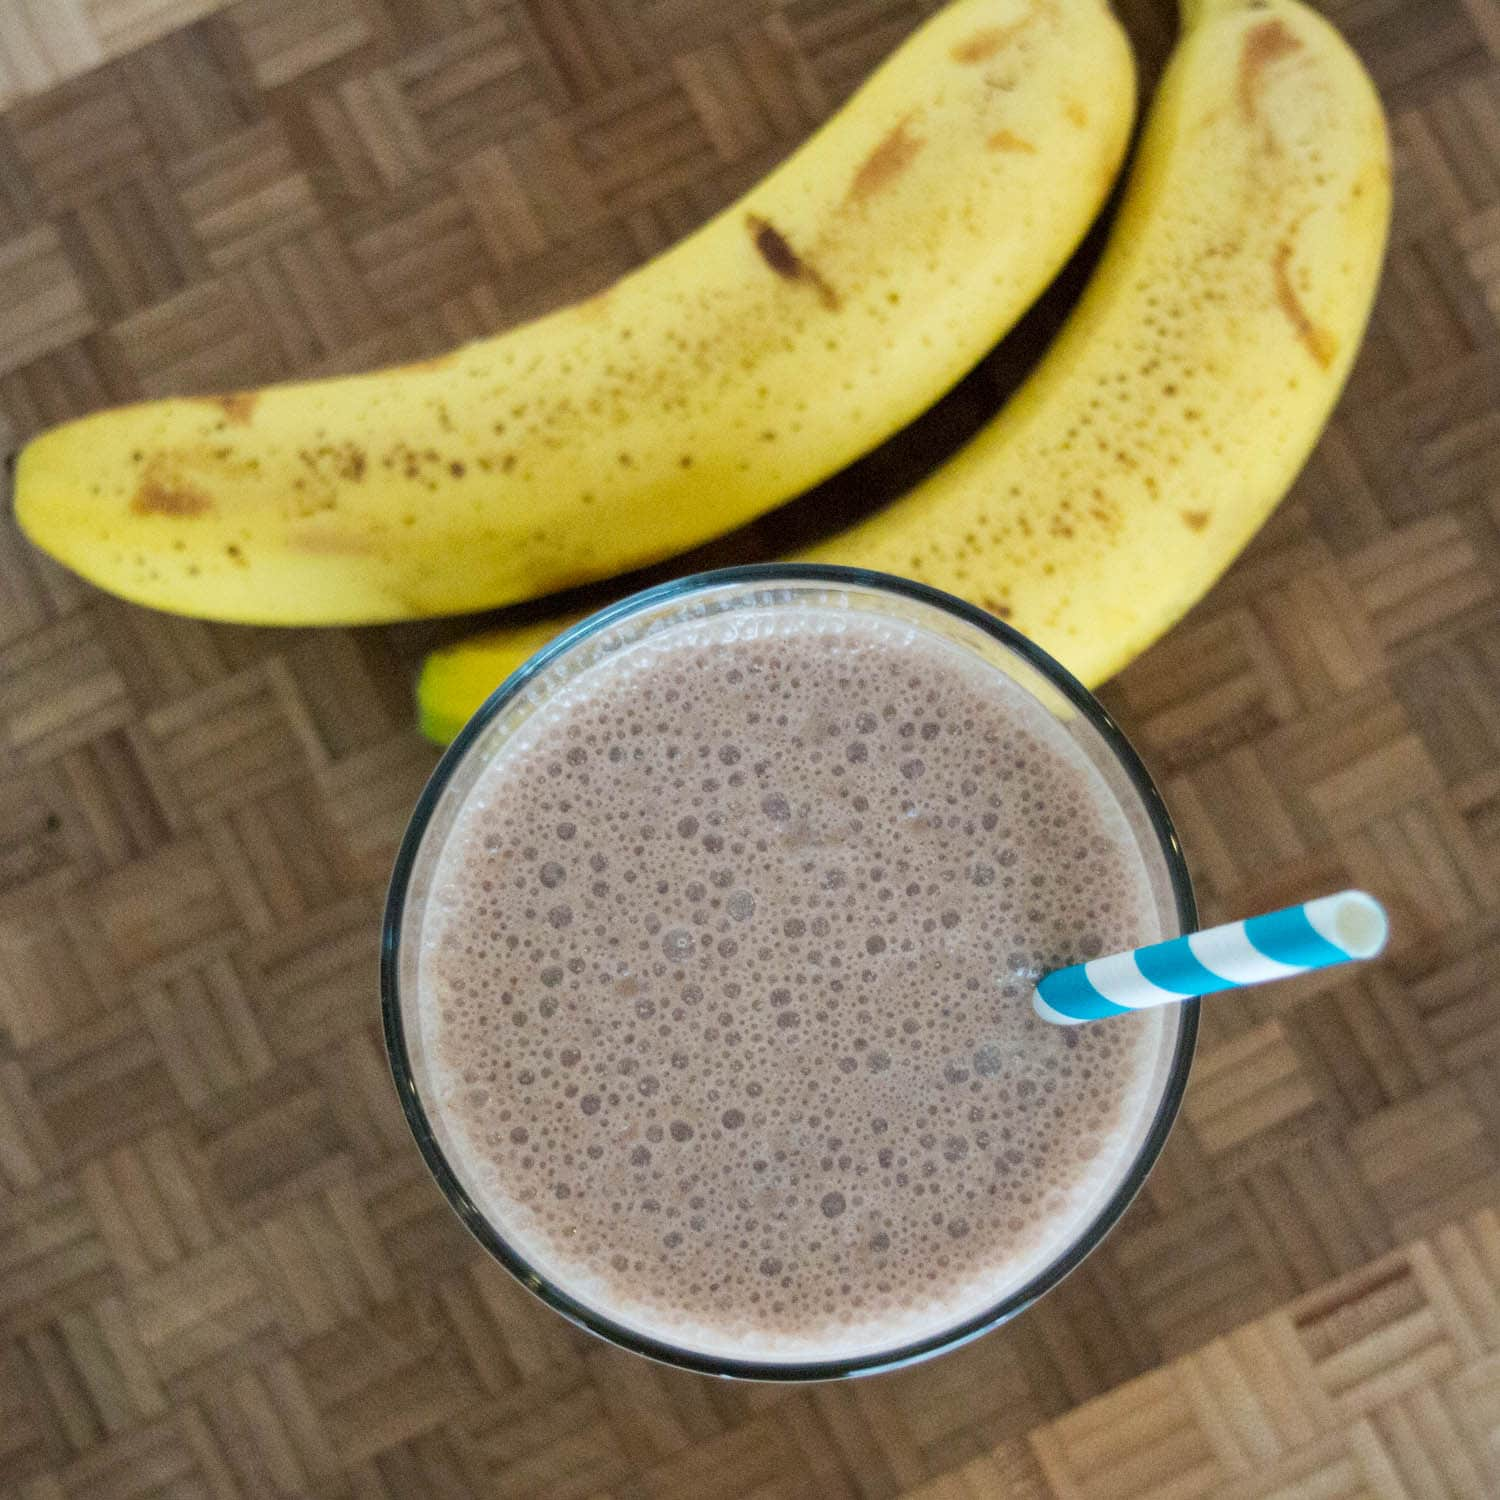 Chocolate Peanut Butter Smoothie - a dairy free smoothie using Cashew milk, banana and peanut butter